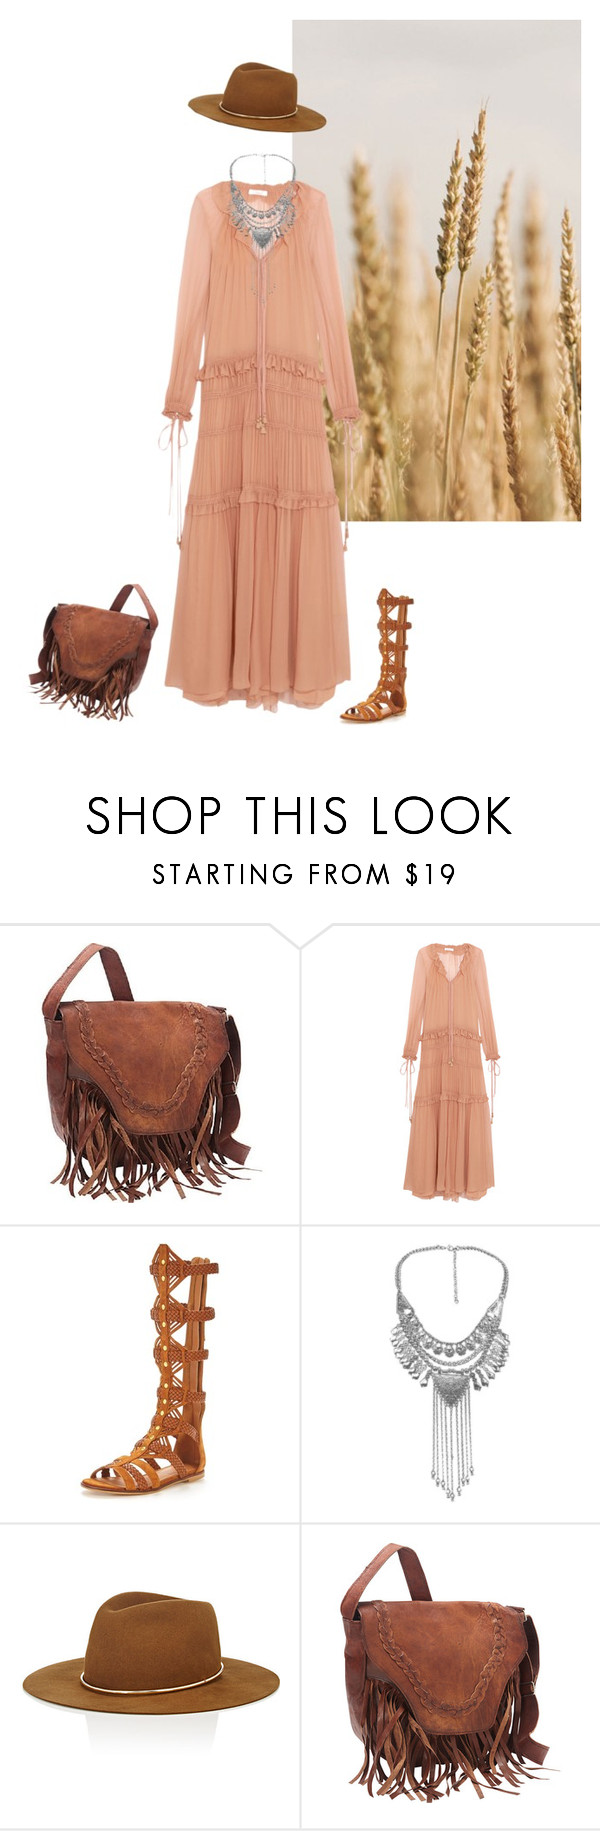 """""""Adventures are forever"""" by minorseventh ❤ liked on Polyvore featuring Chloé, KG Kurt Geiger, Janessa Leone and SHARO"""